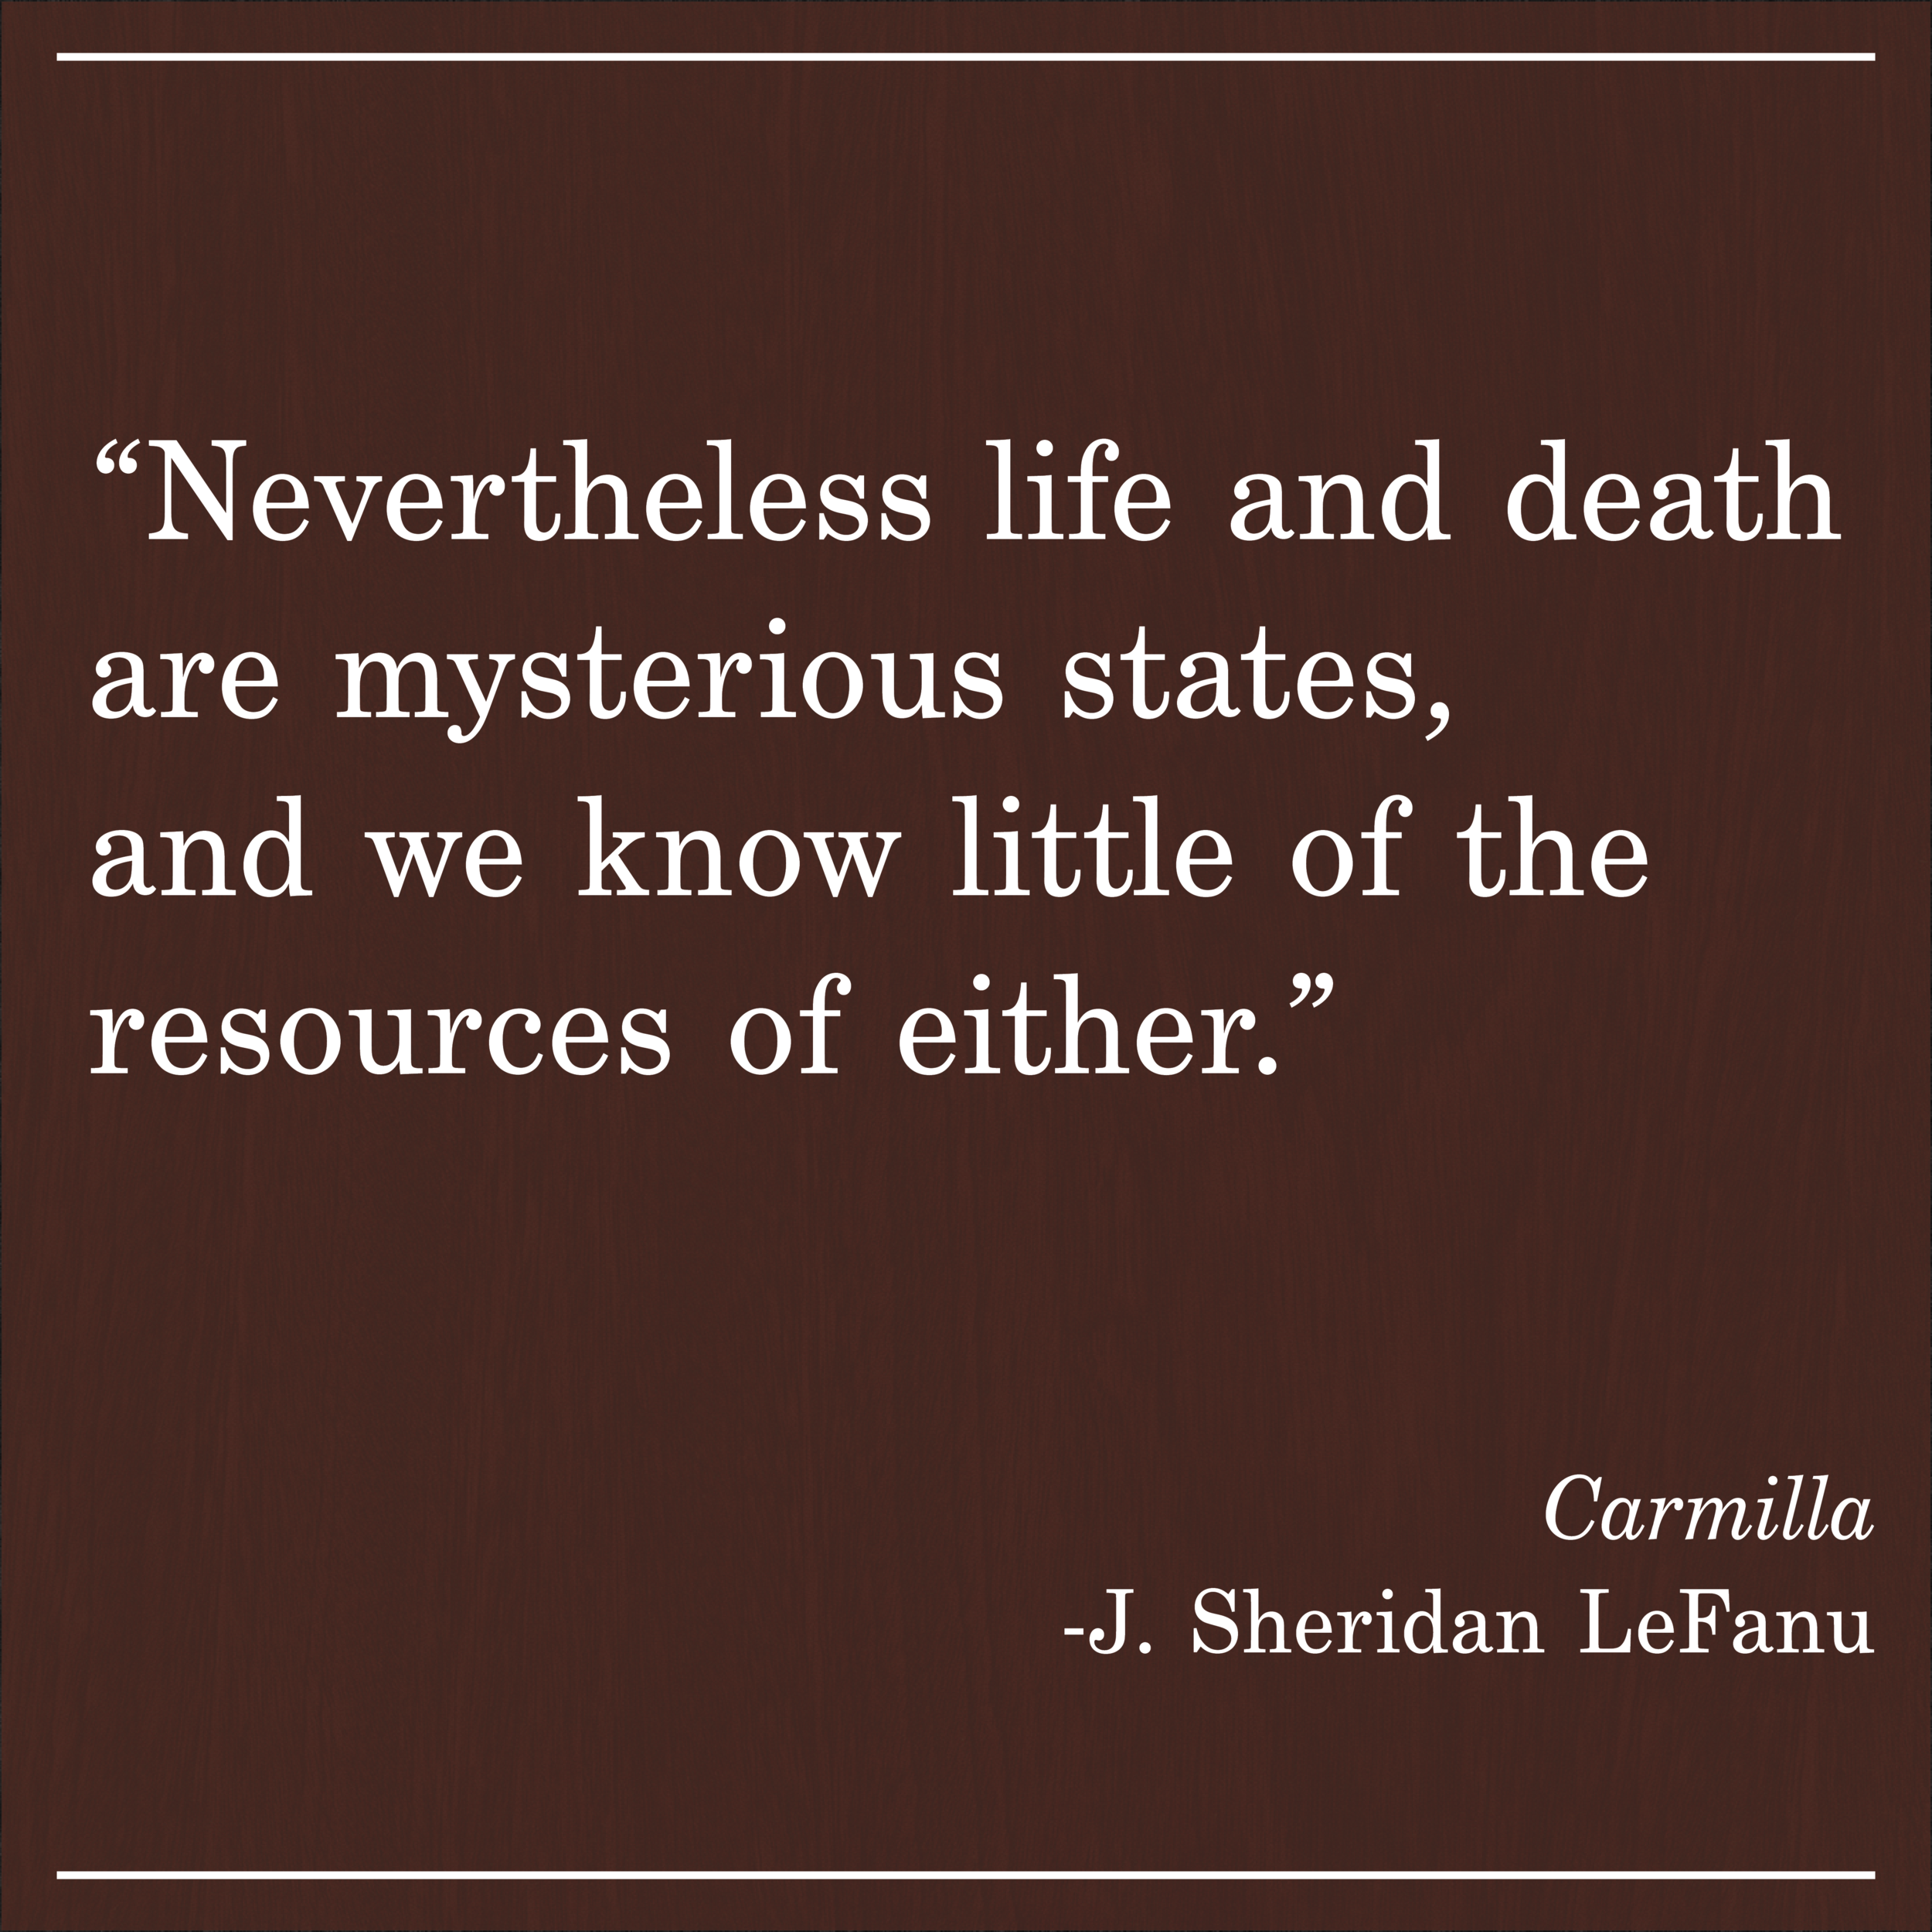 Daily Quote Carmilla by J Sheridan LeFanu